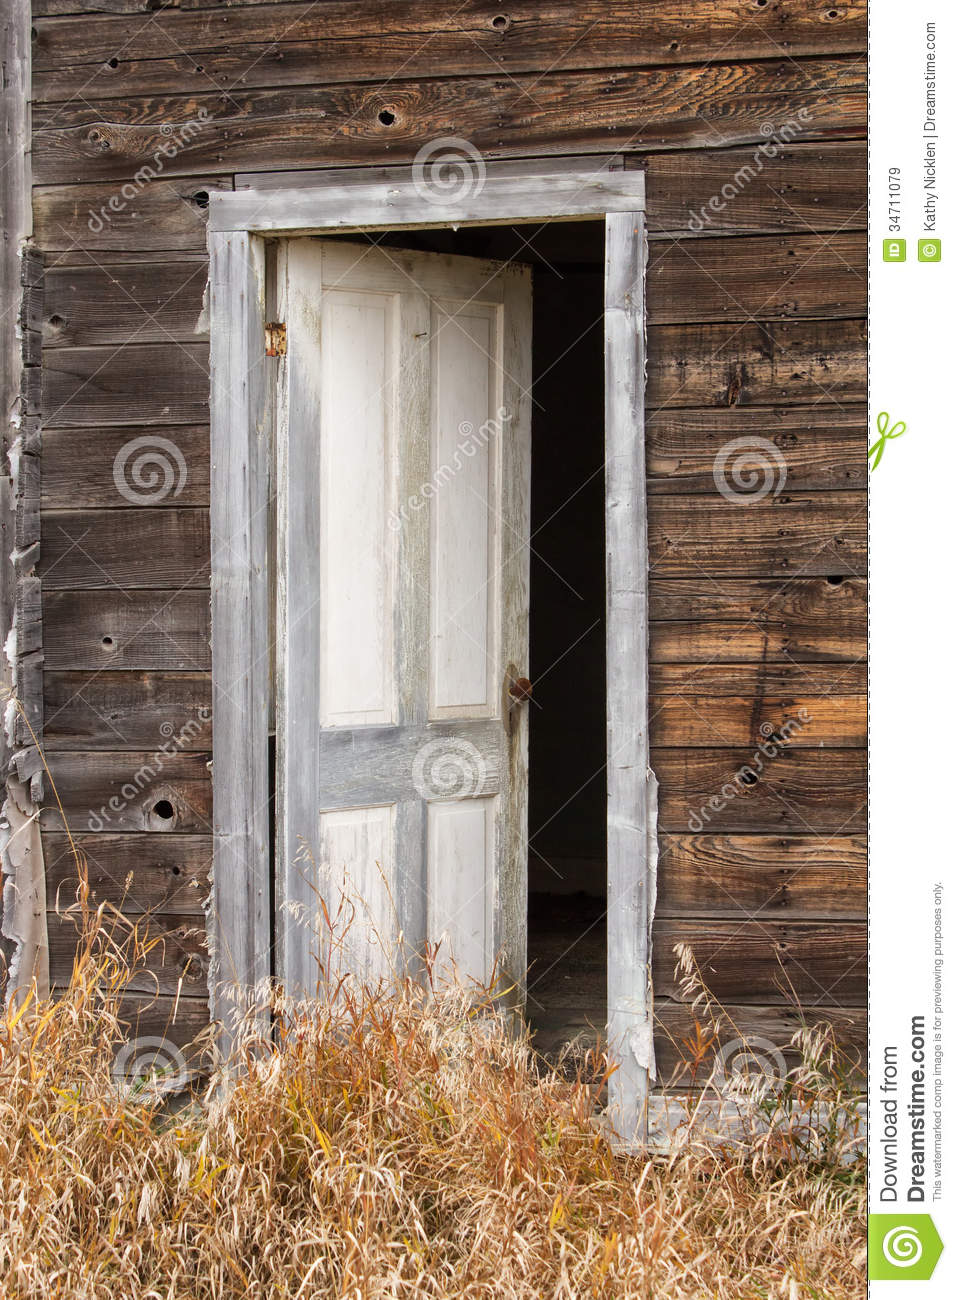 A White Wood Door Standing Ajar Royalty Free Stock Images.